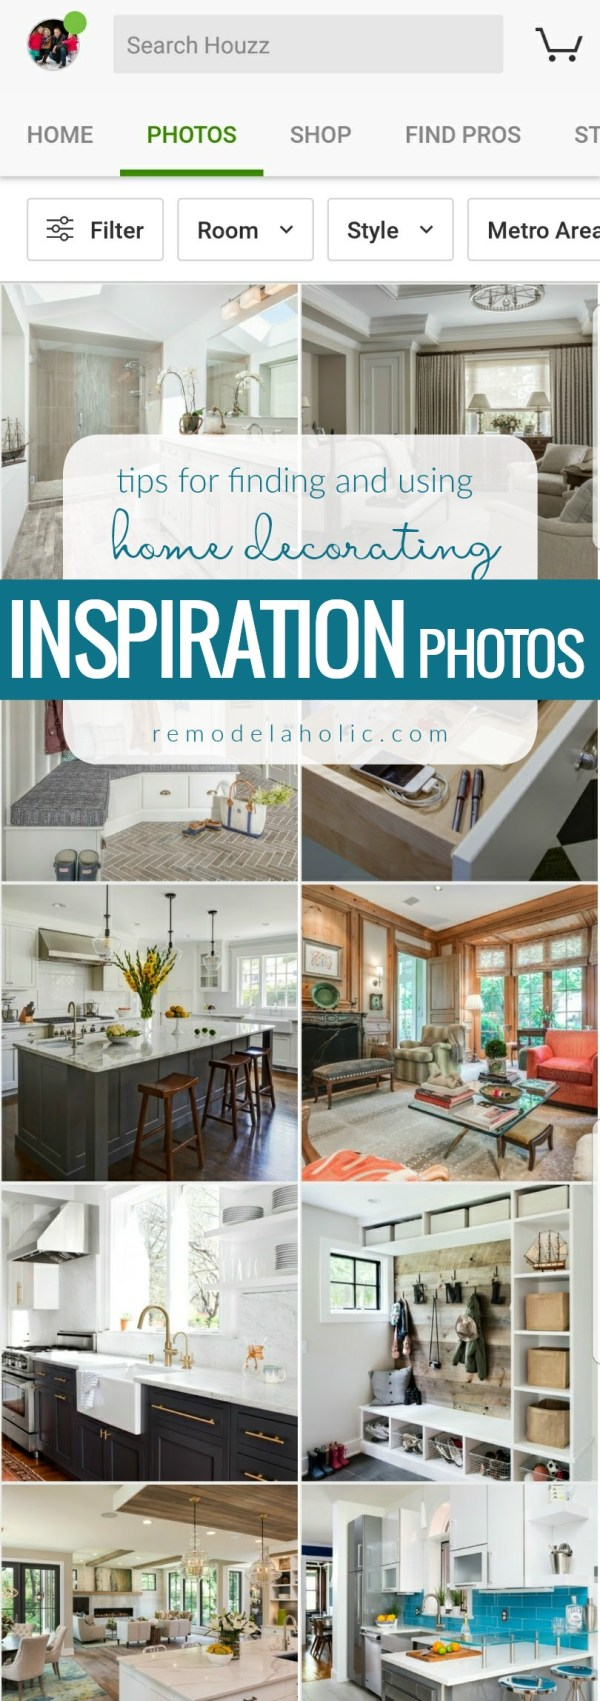 Houzz Tips For Finding And Using The Best Home Decorating Inspiration Photos From @Remodelaholic